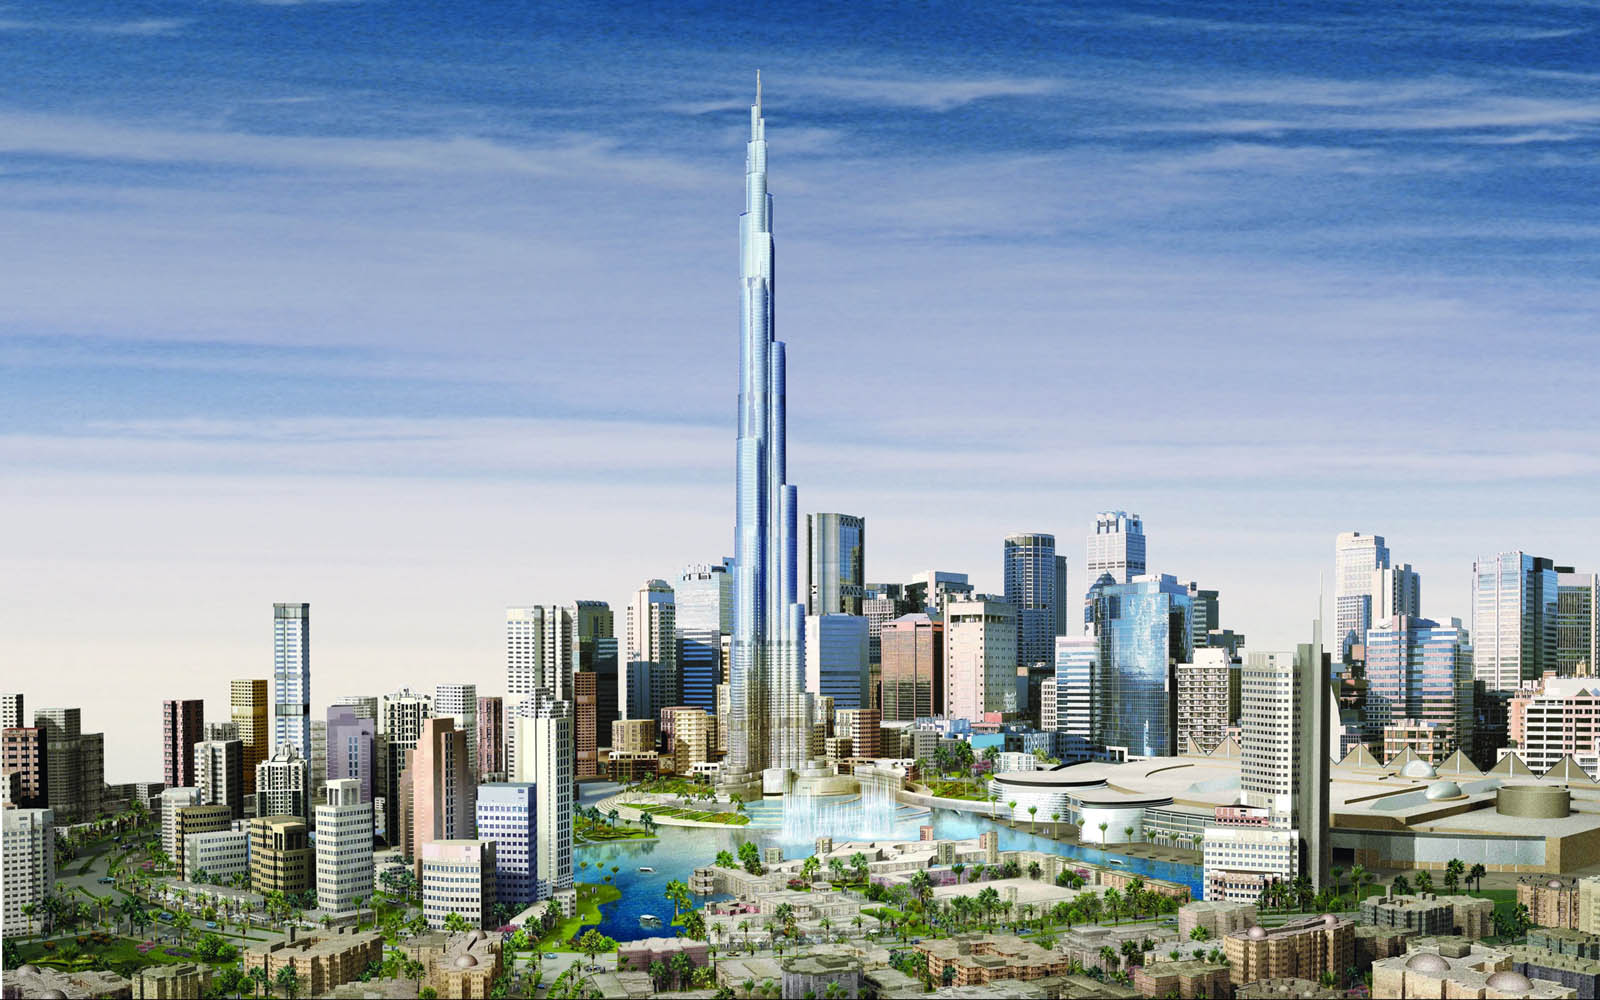 Tag Dubai Wallpapers Backgrounds Photos Images and Pictures for 1600x1000